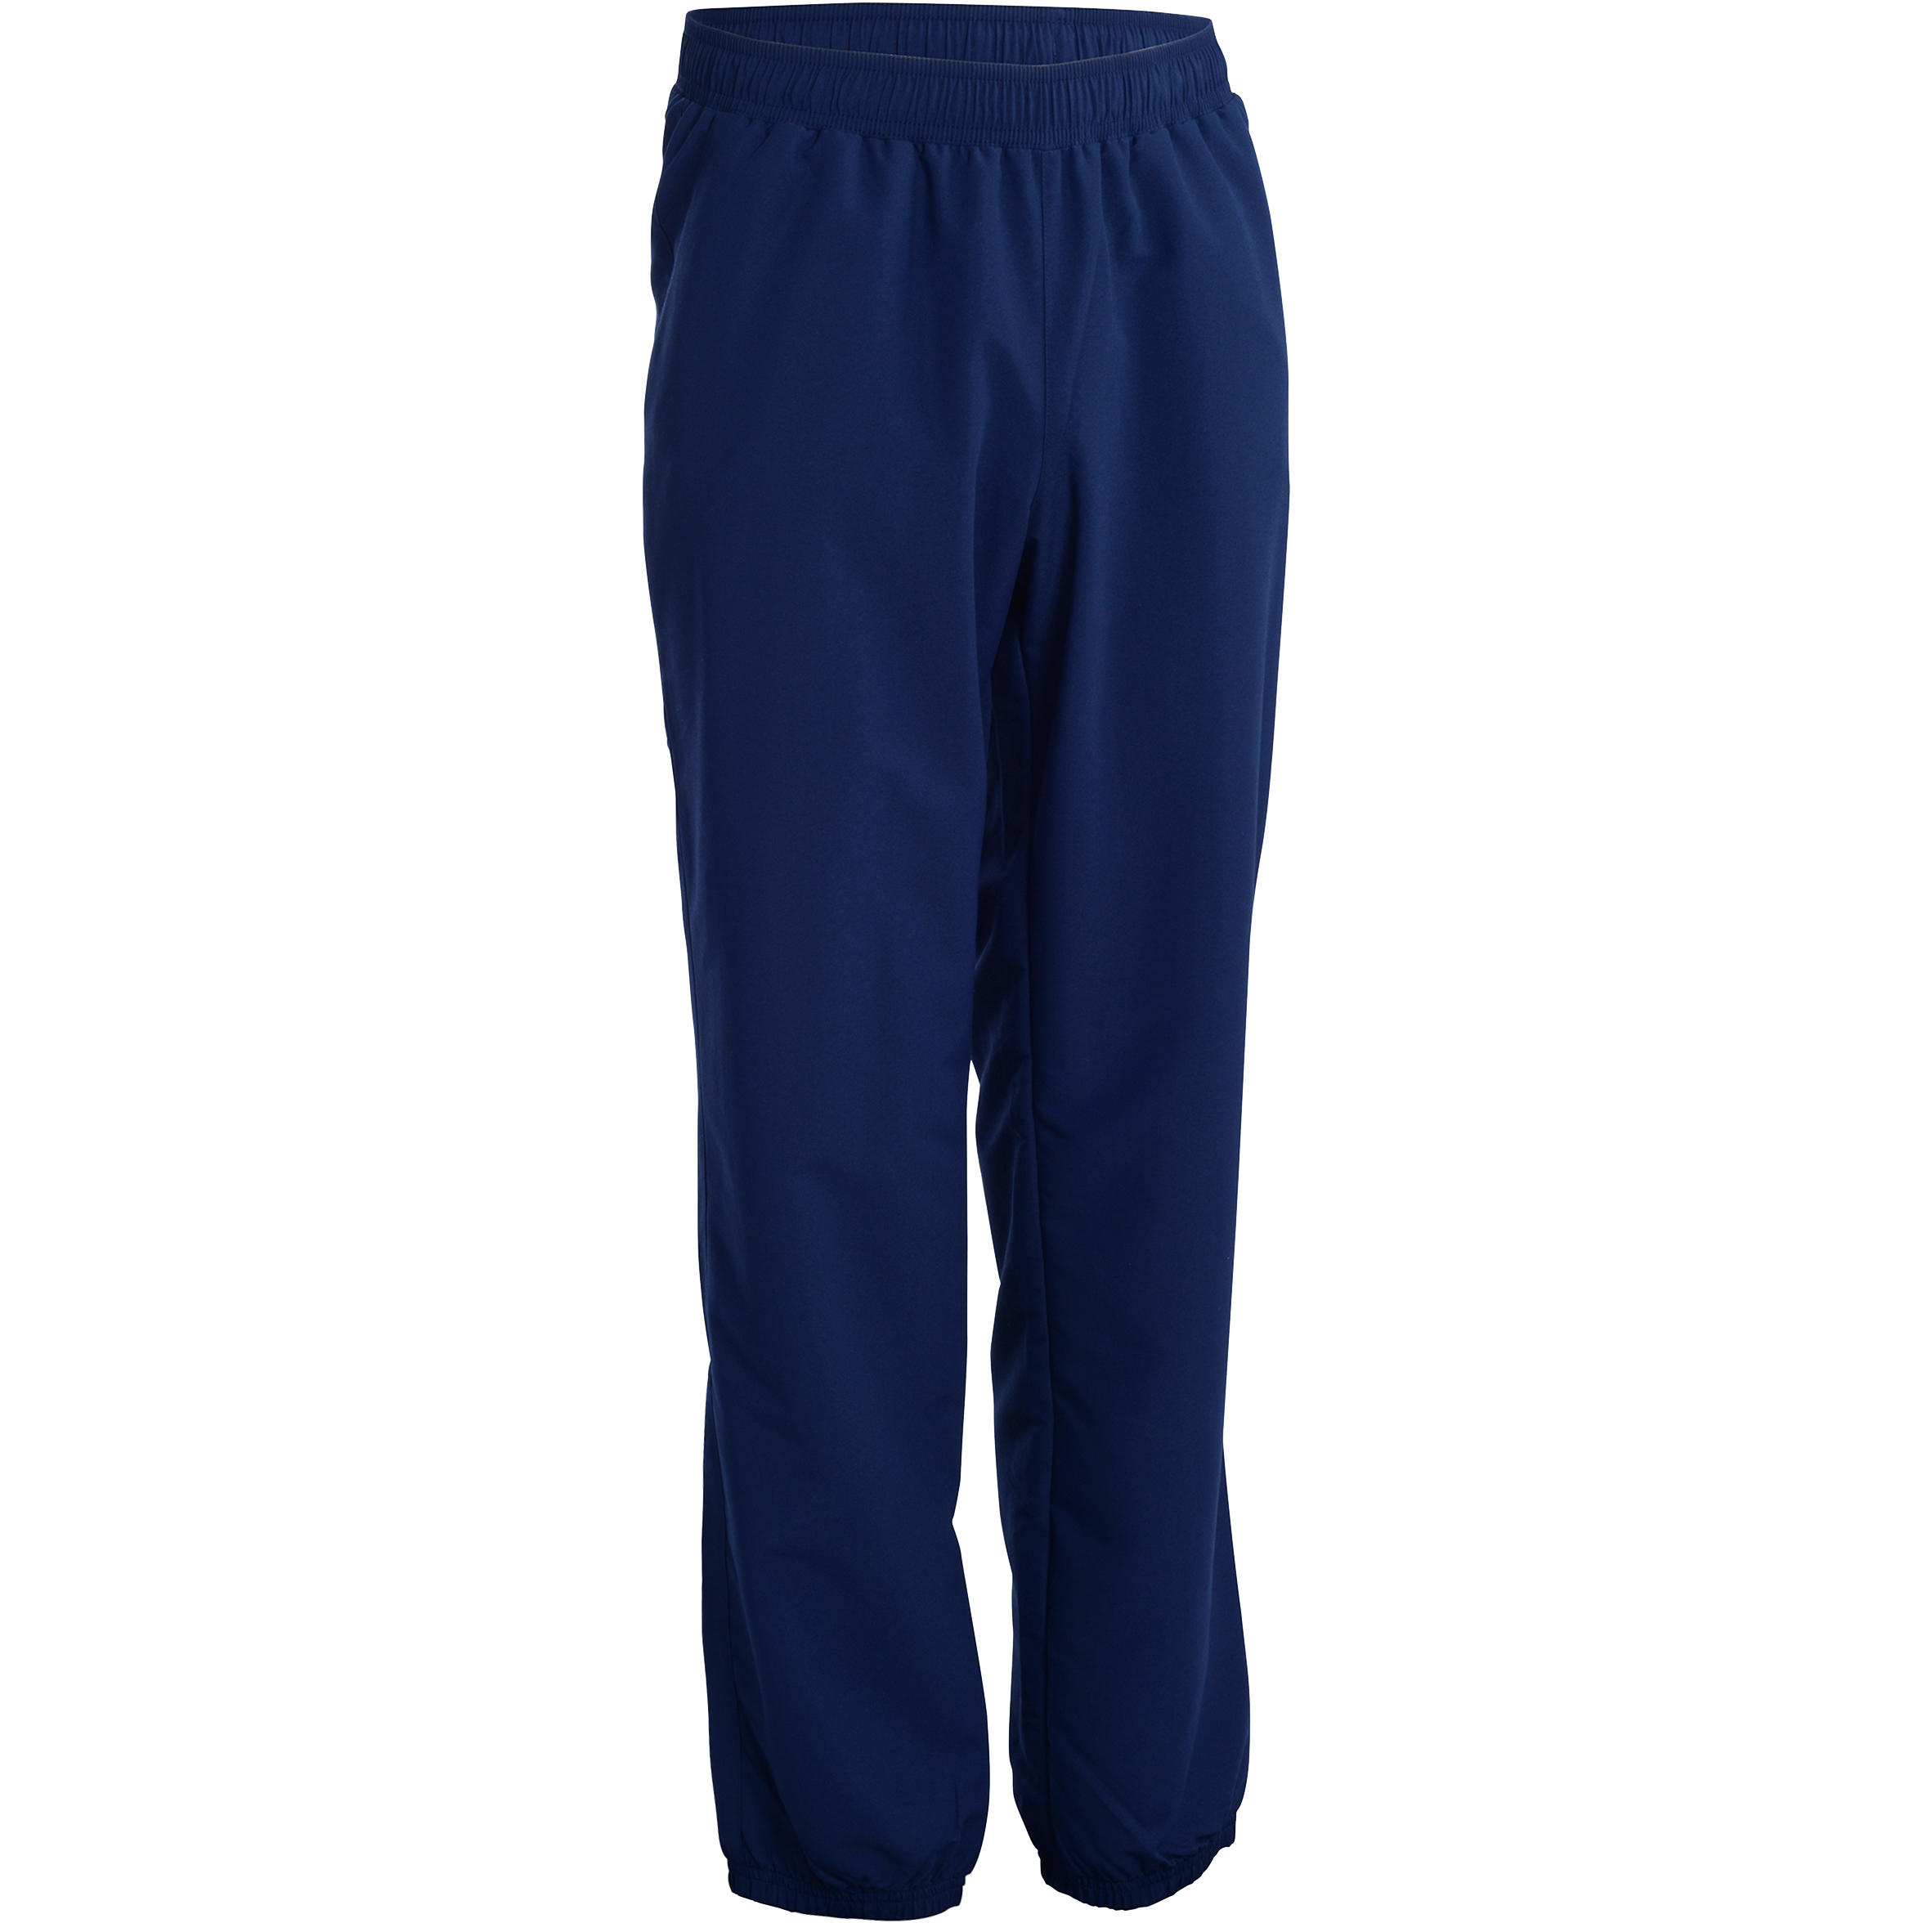 FPA100 Fitness Cardio Tracksuit Bottoms - Navy Blue